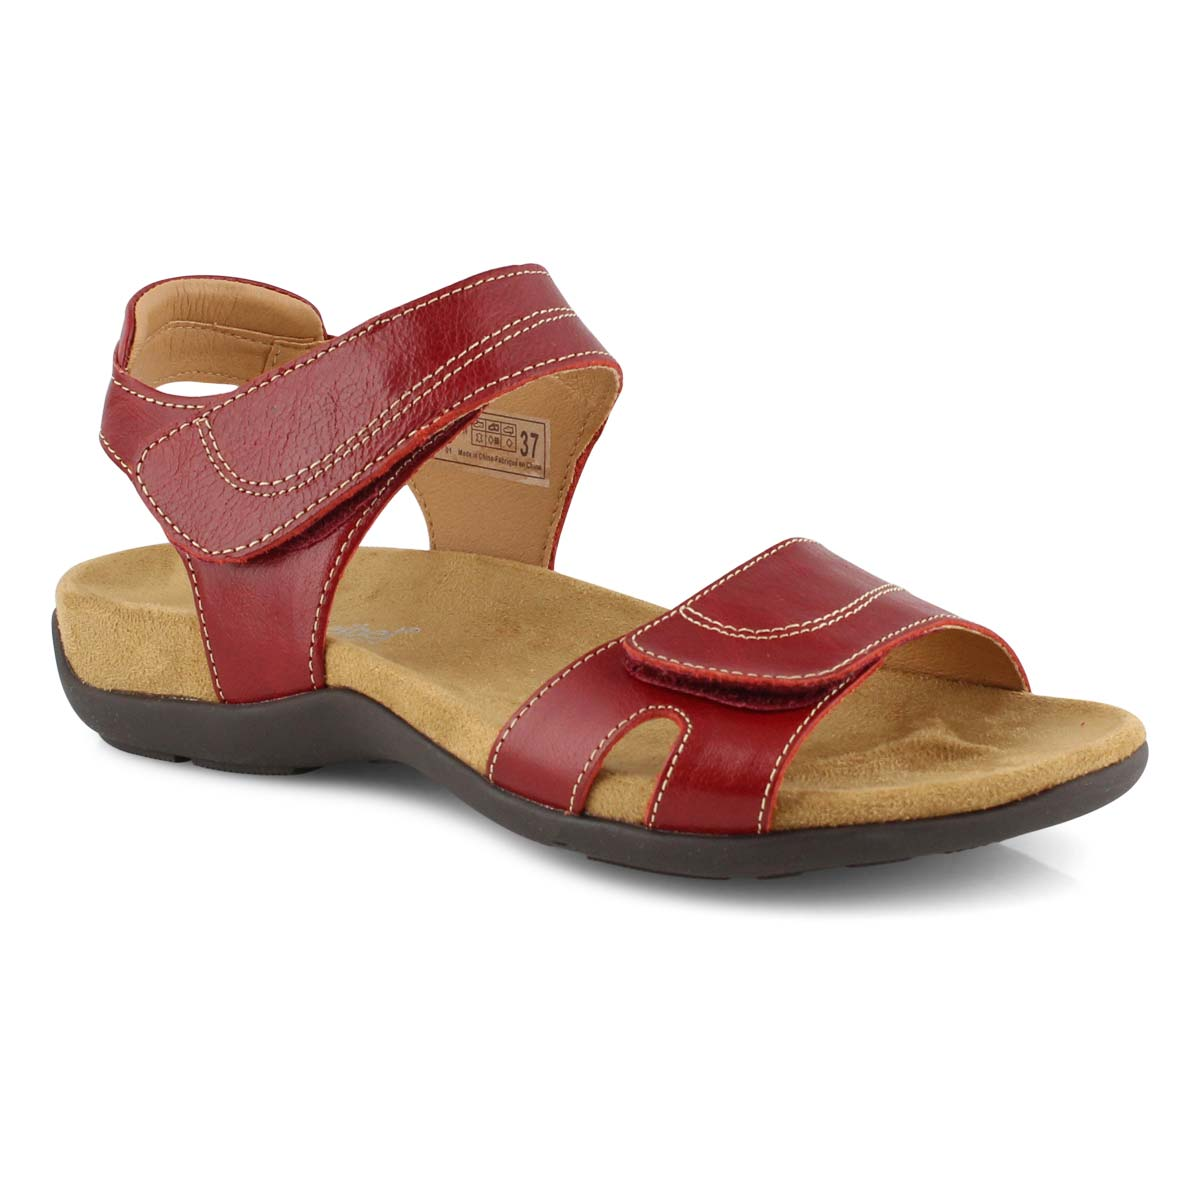 Lds Dalia 01 red casual sandal